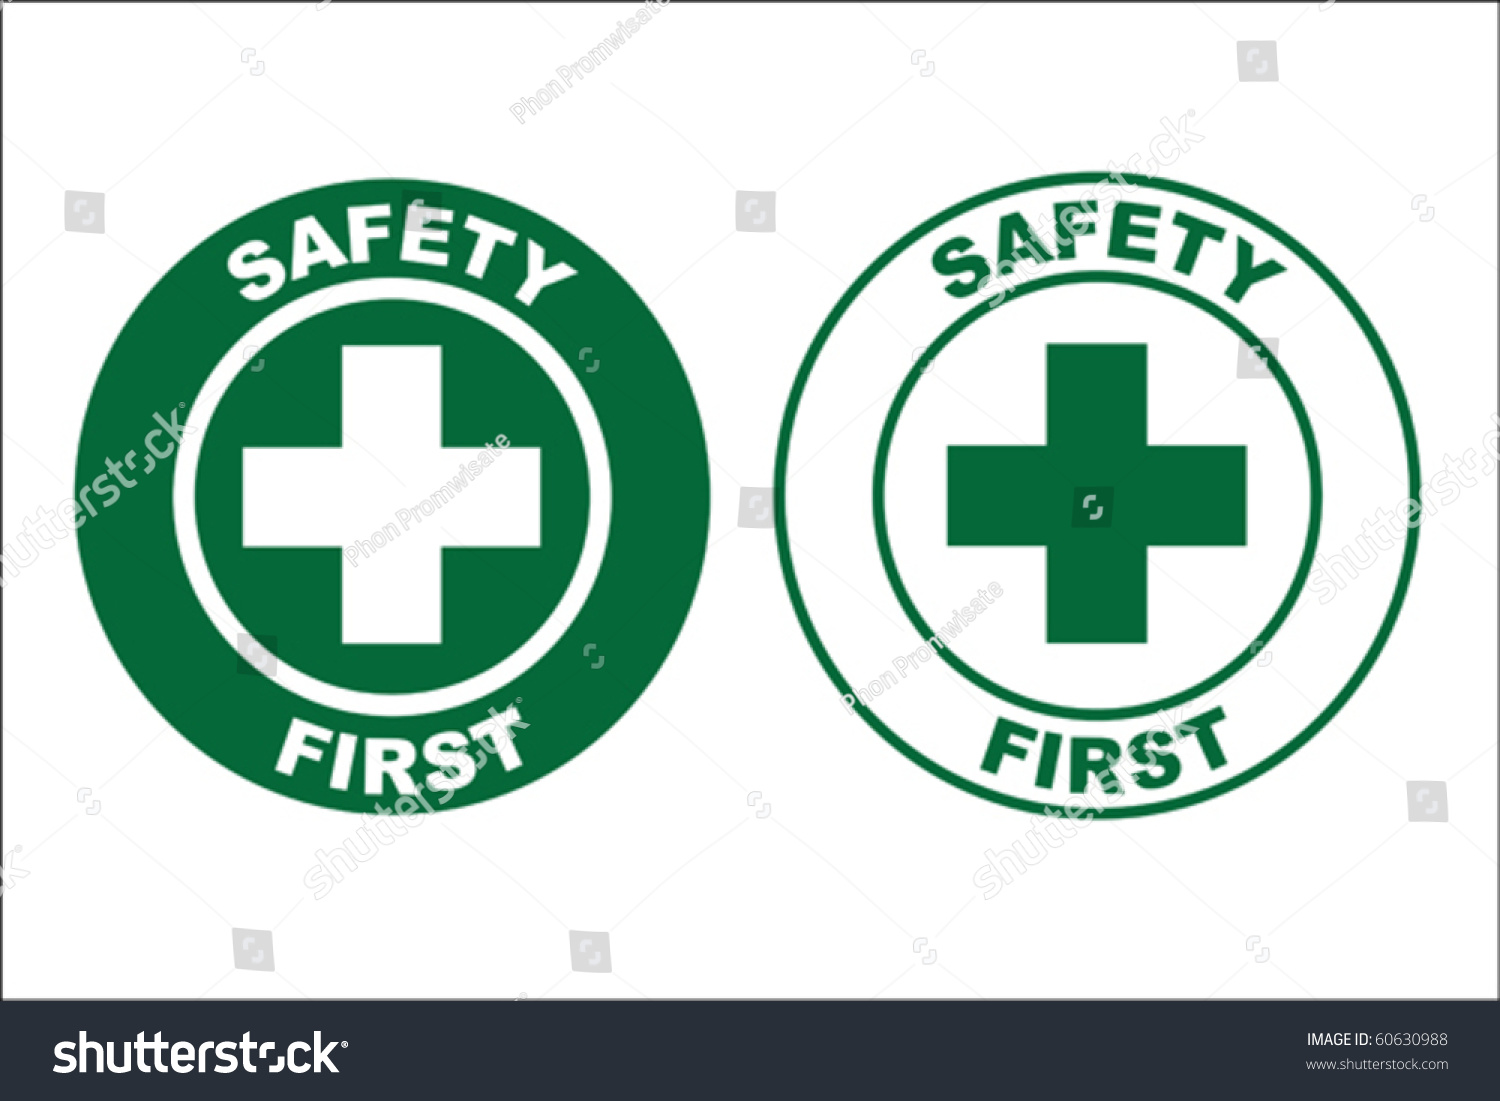 safety first sign stock vector 60630988 shutterstock. Black Bedroom Furniture Sets. Home Design Ideas